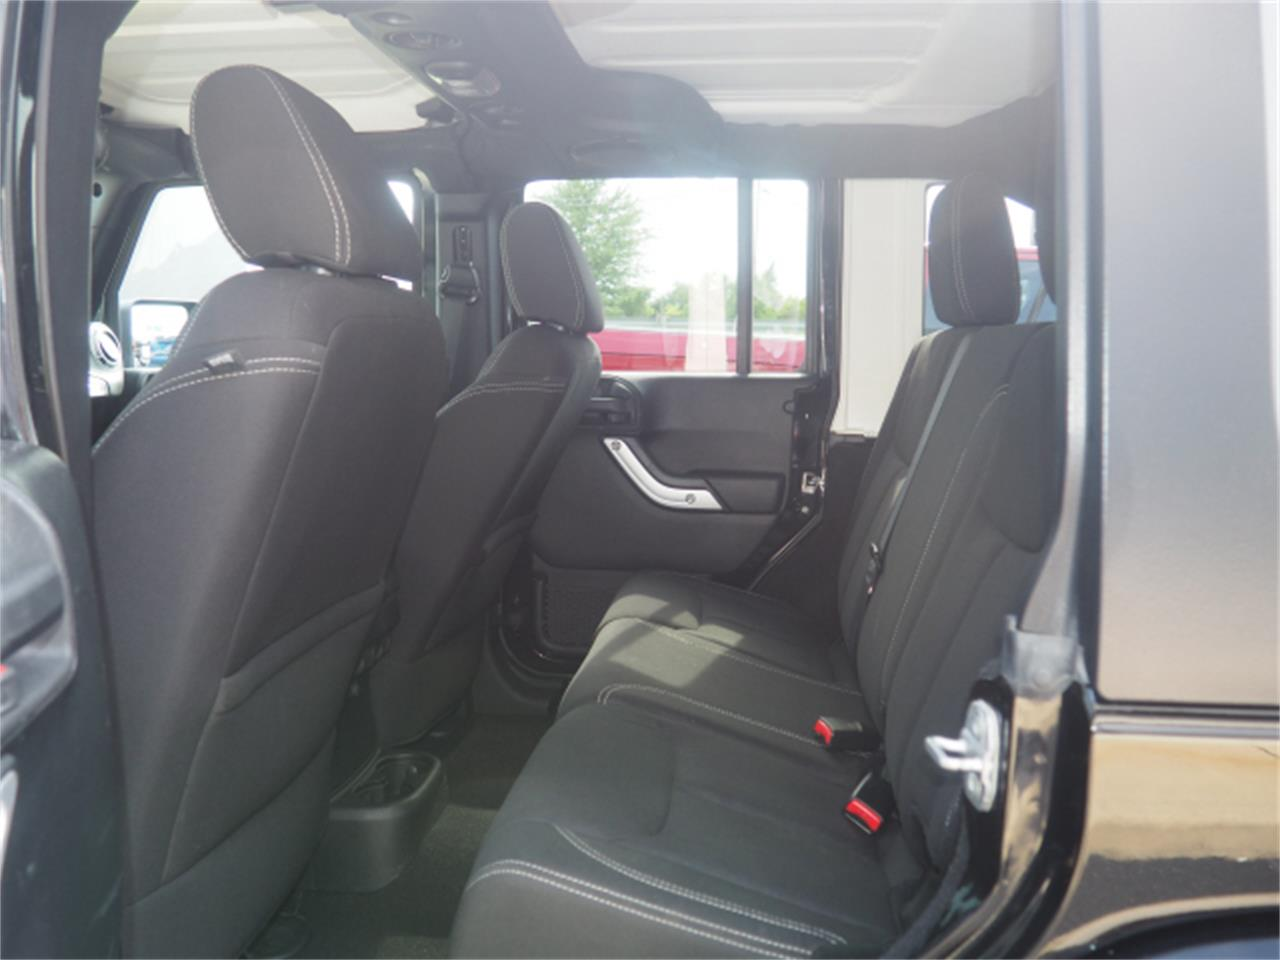 2013 Jeep Wrangler for sale in Marysville, OH – photo 16